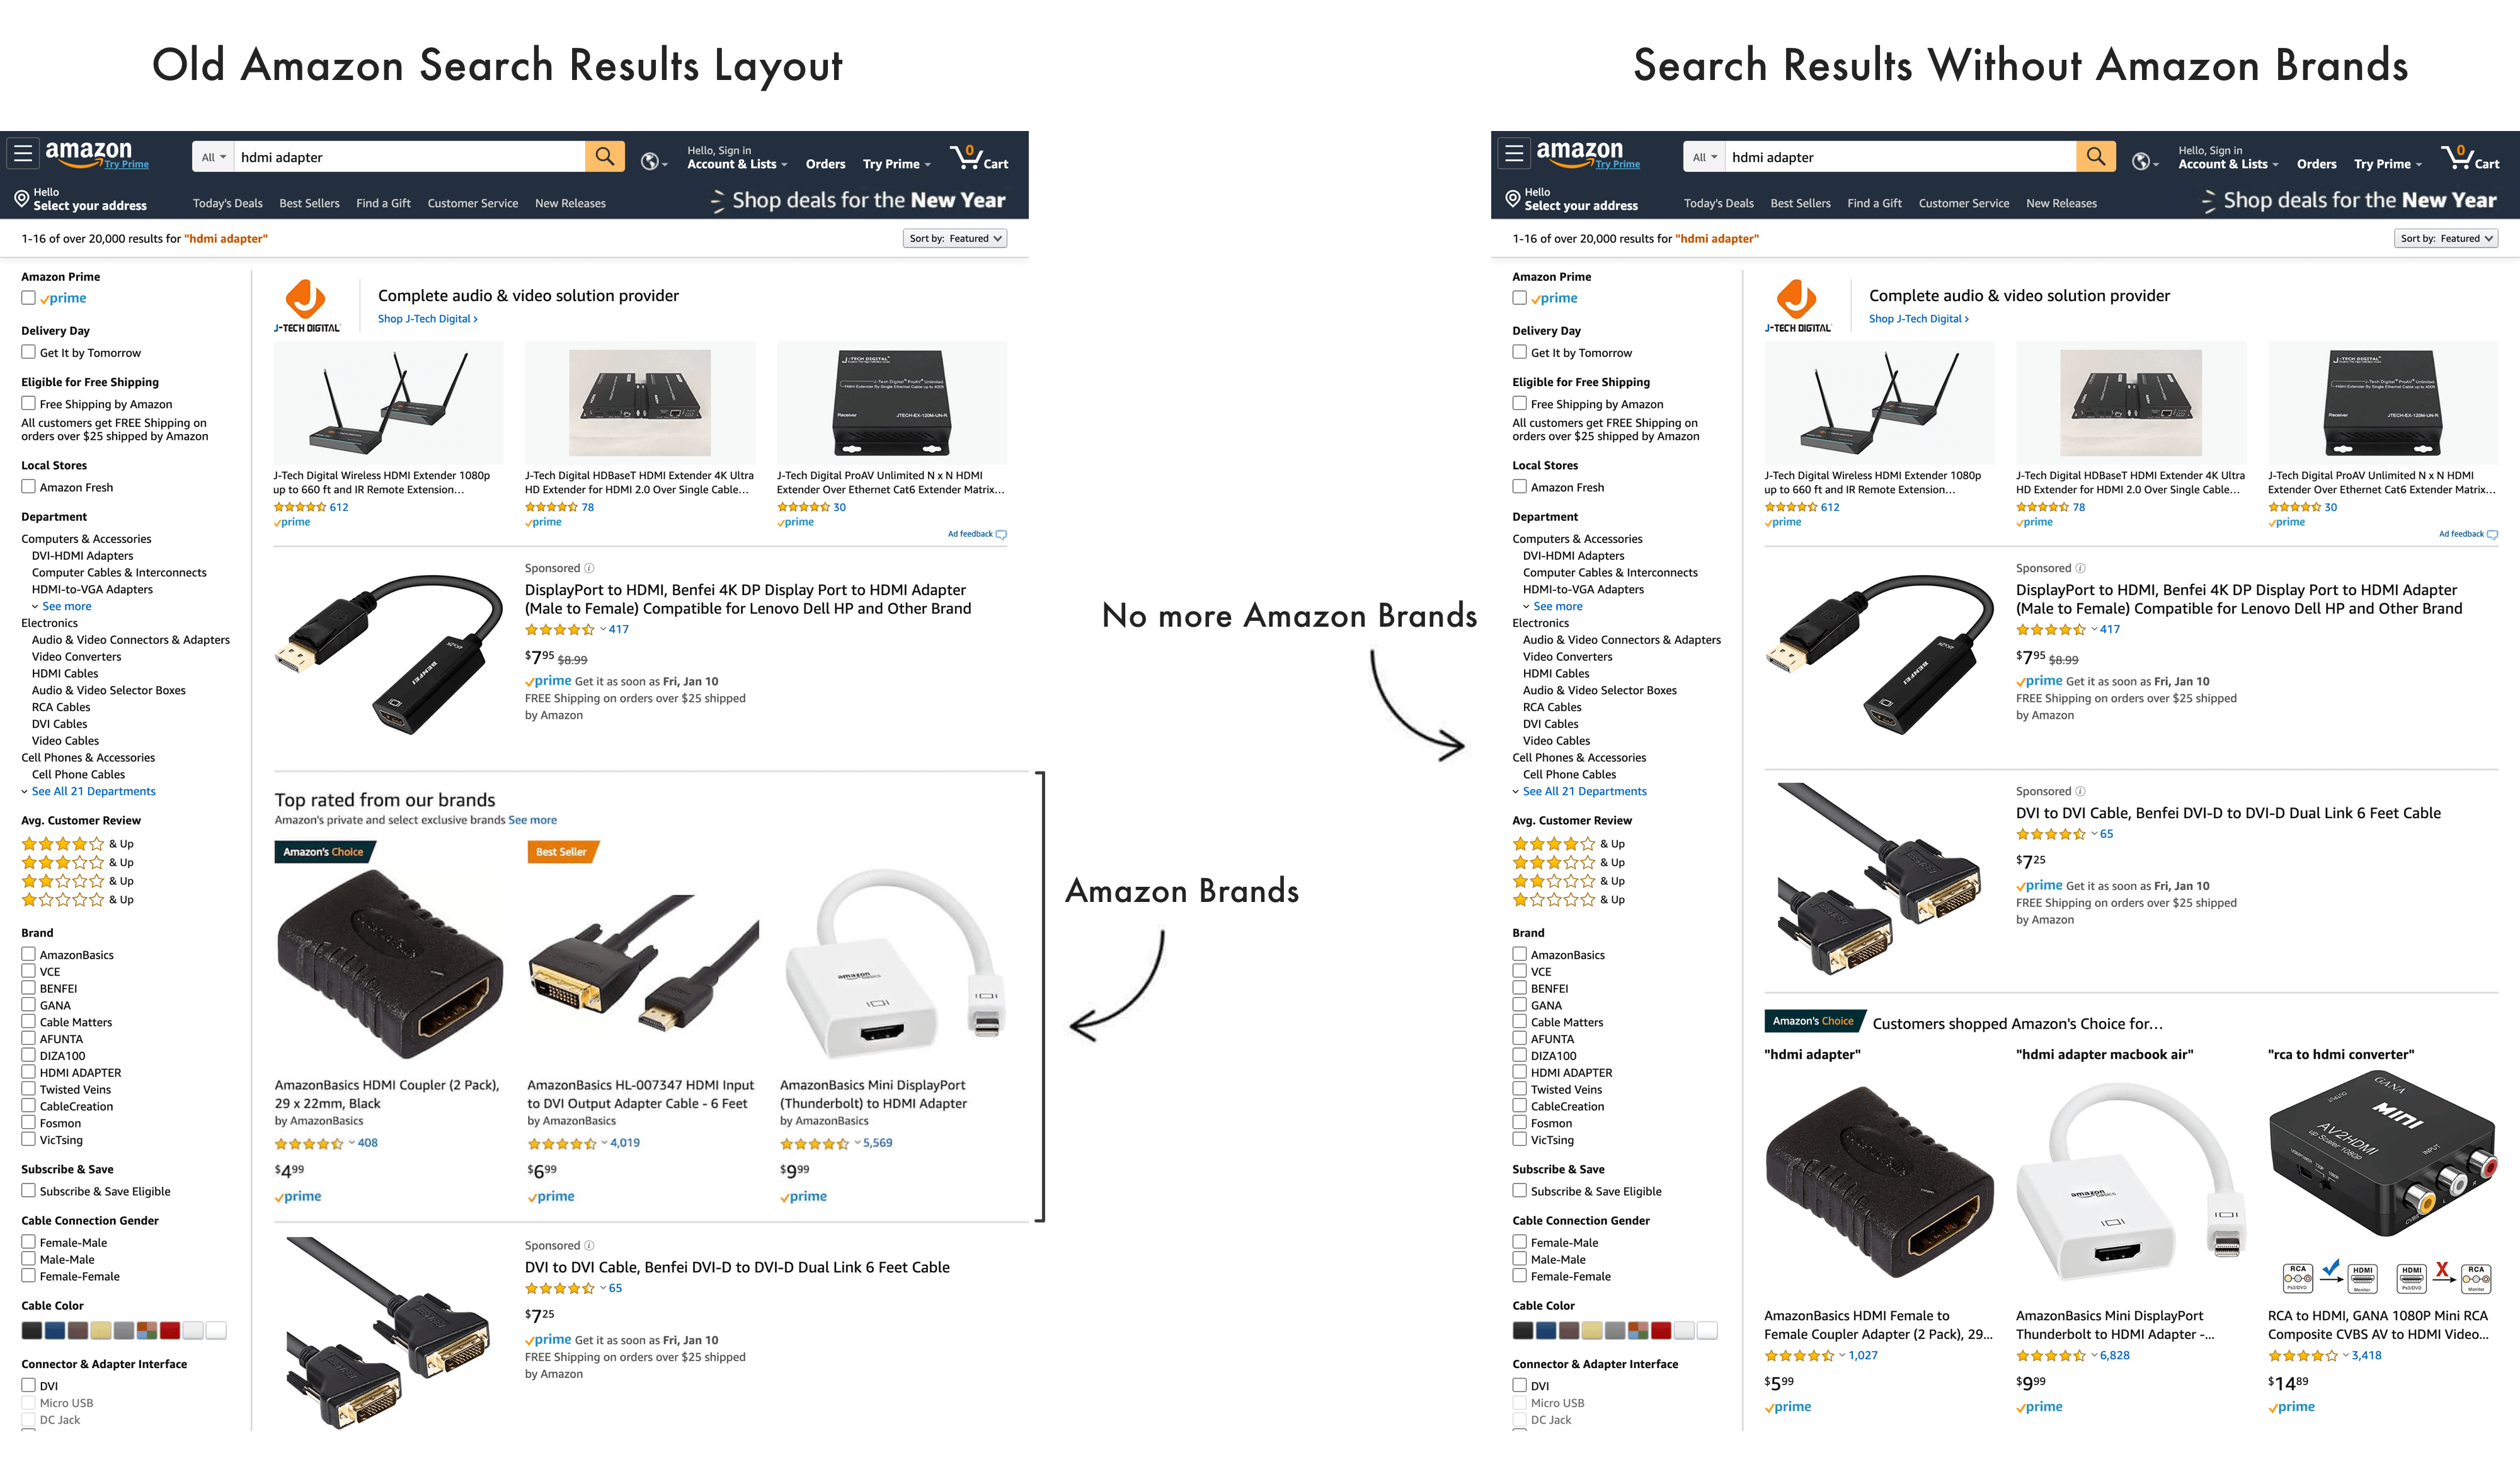 Amazon Stopped Featuring Its Own Brands in Search Results